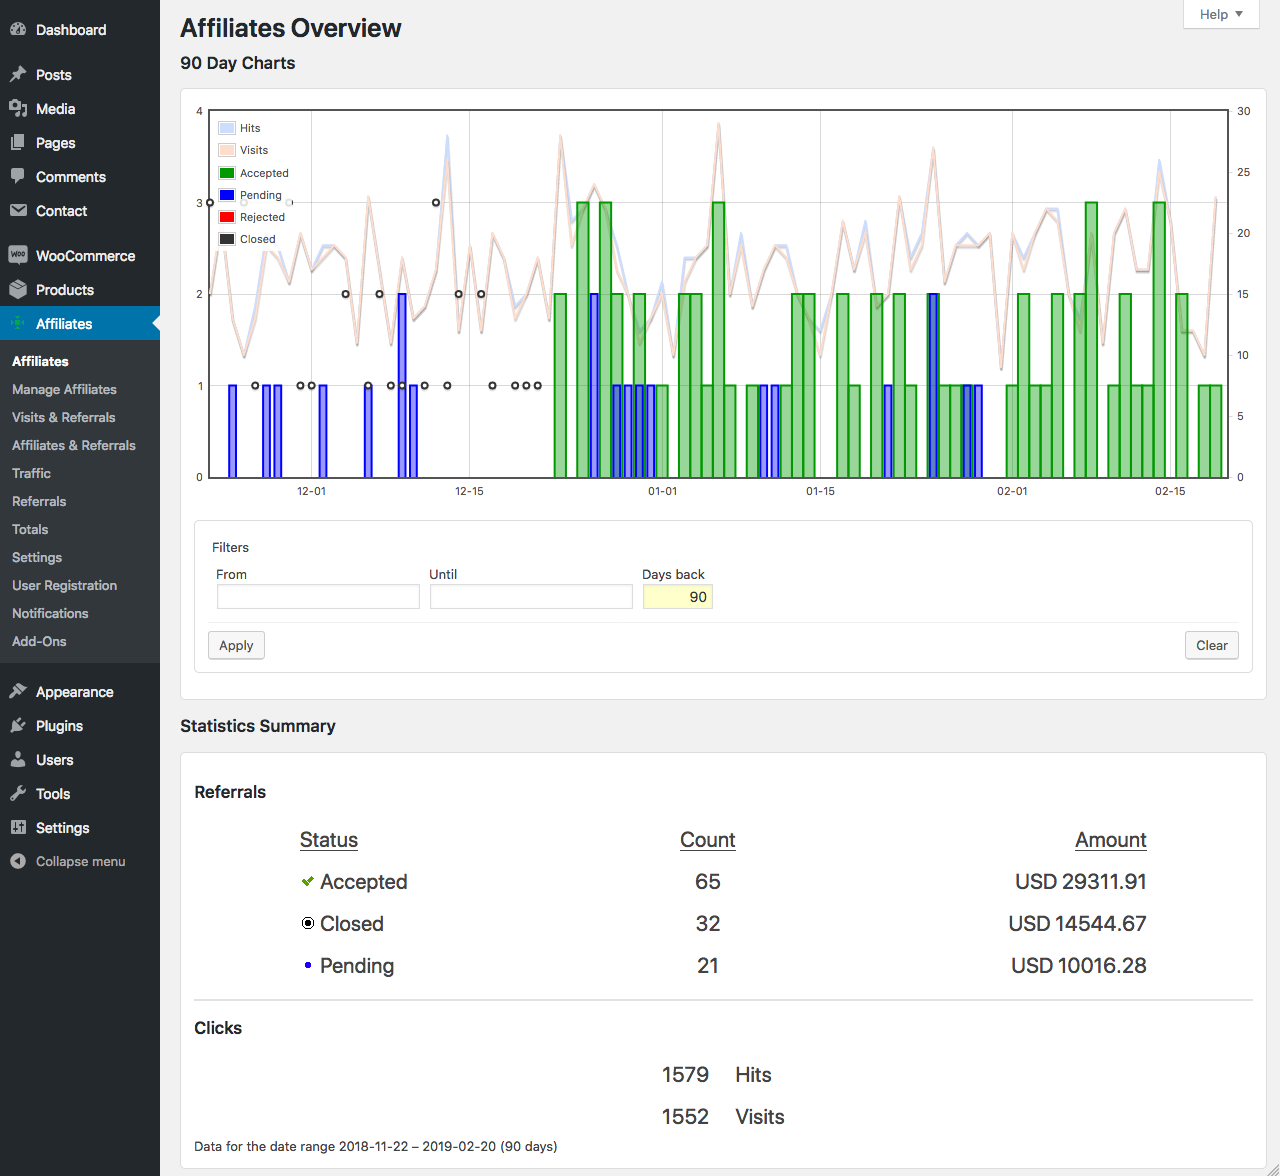 Affiliates Overview - Shows summarized information based on current and historic data to the Affiliate Manager.